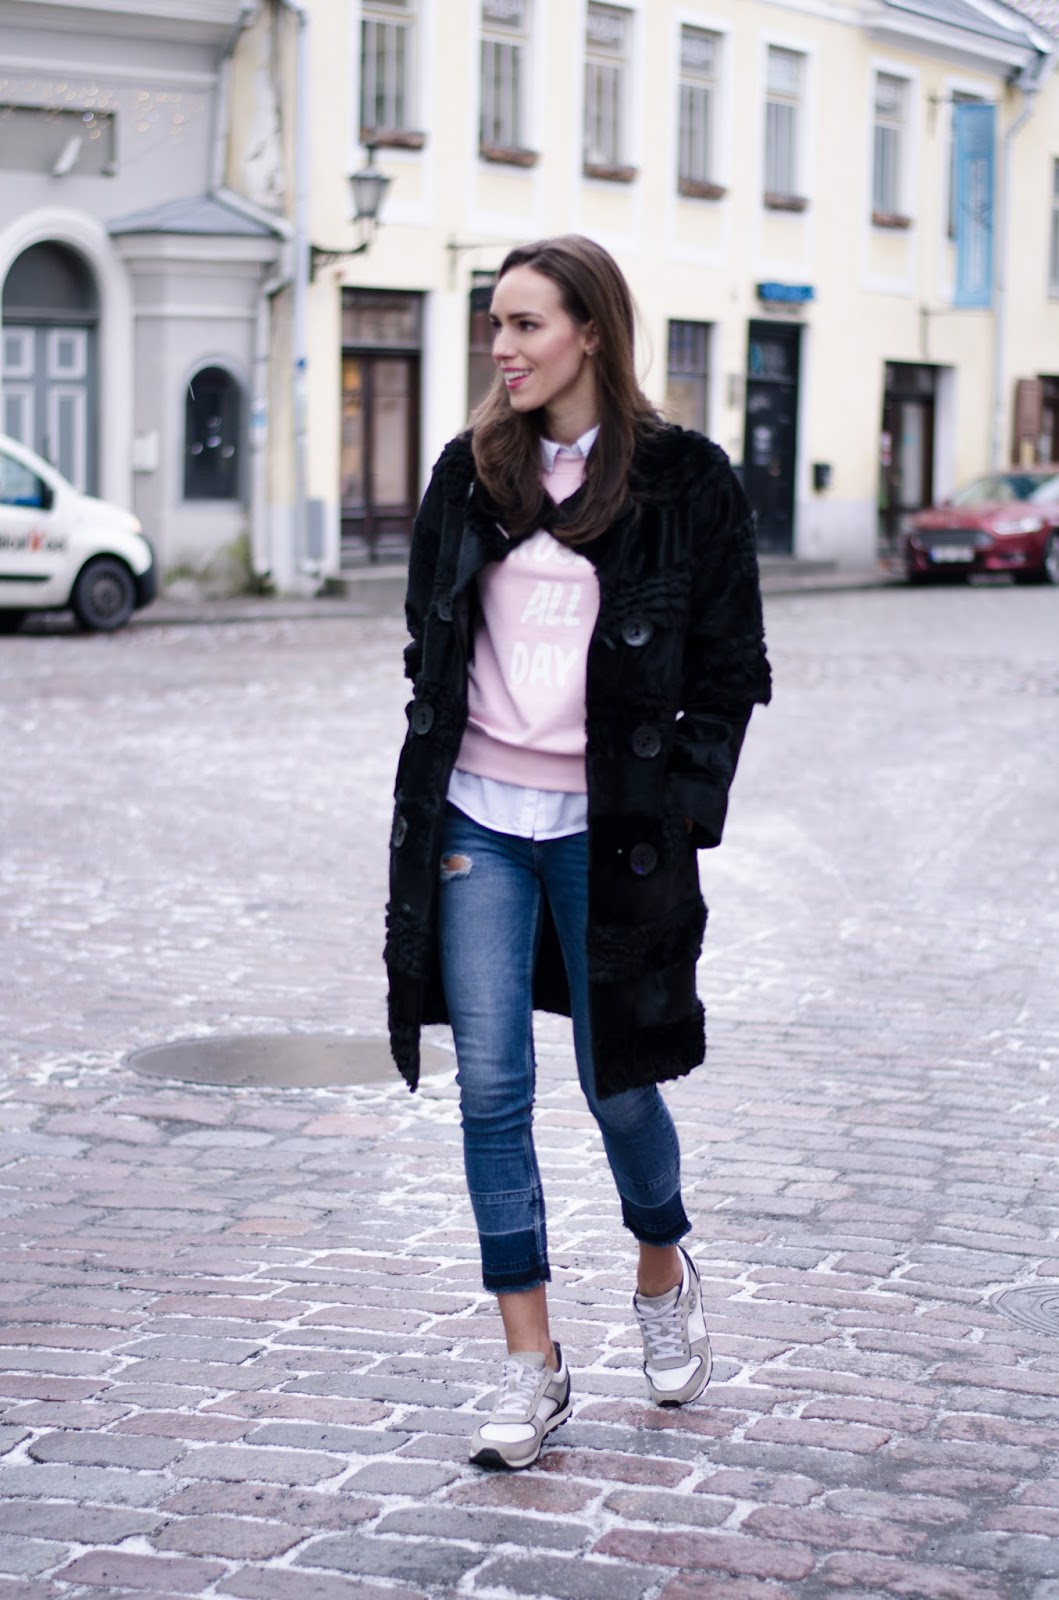 fur coat outfit street style